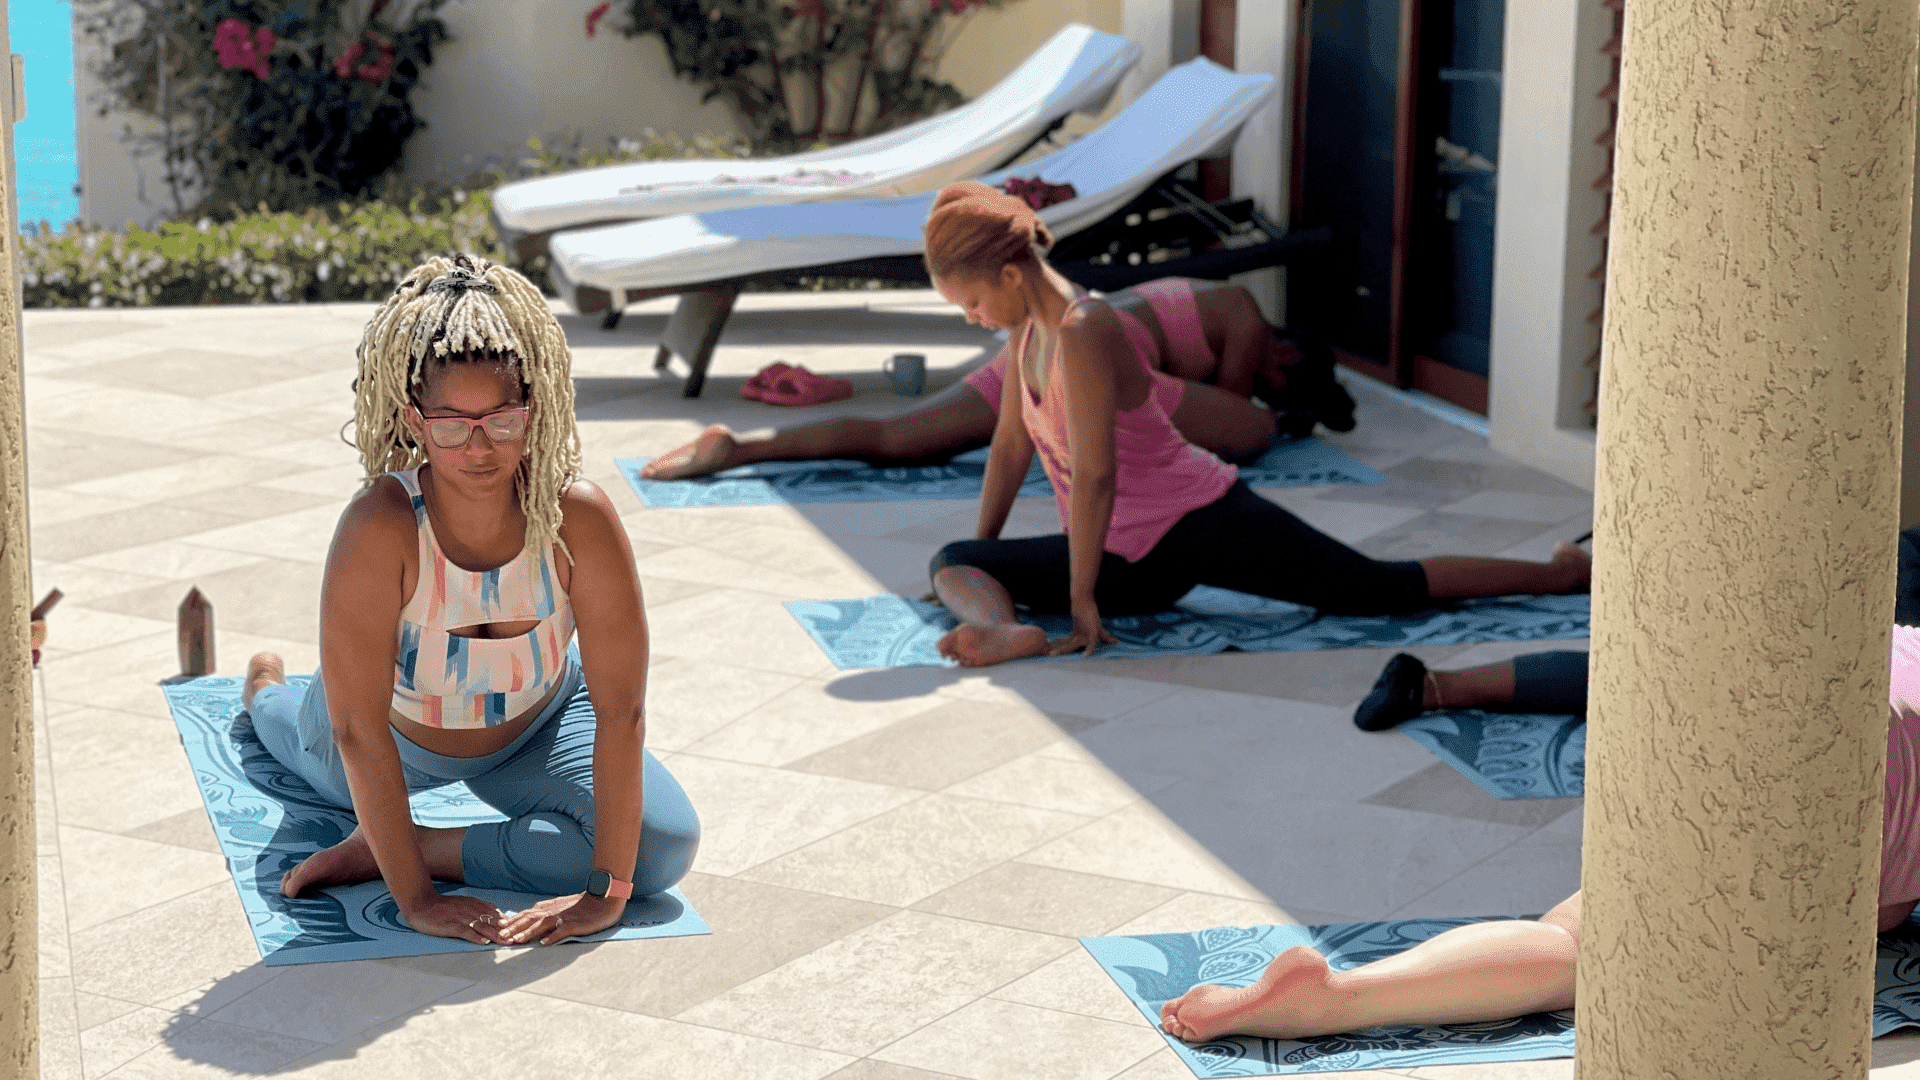 Several women doing yoga stretches outside.